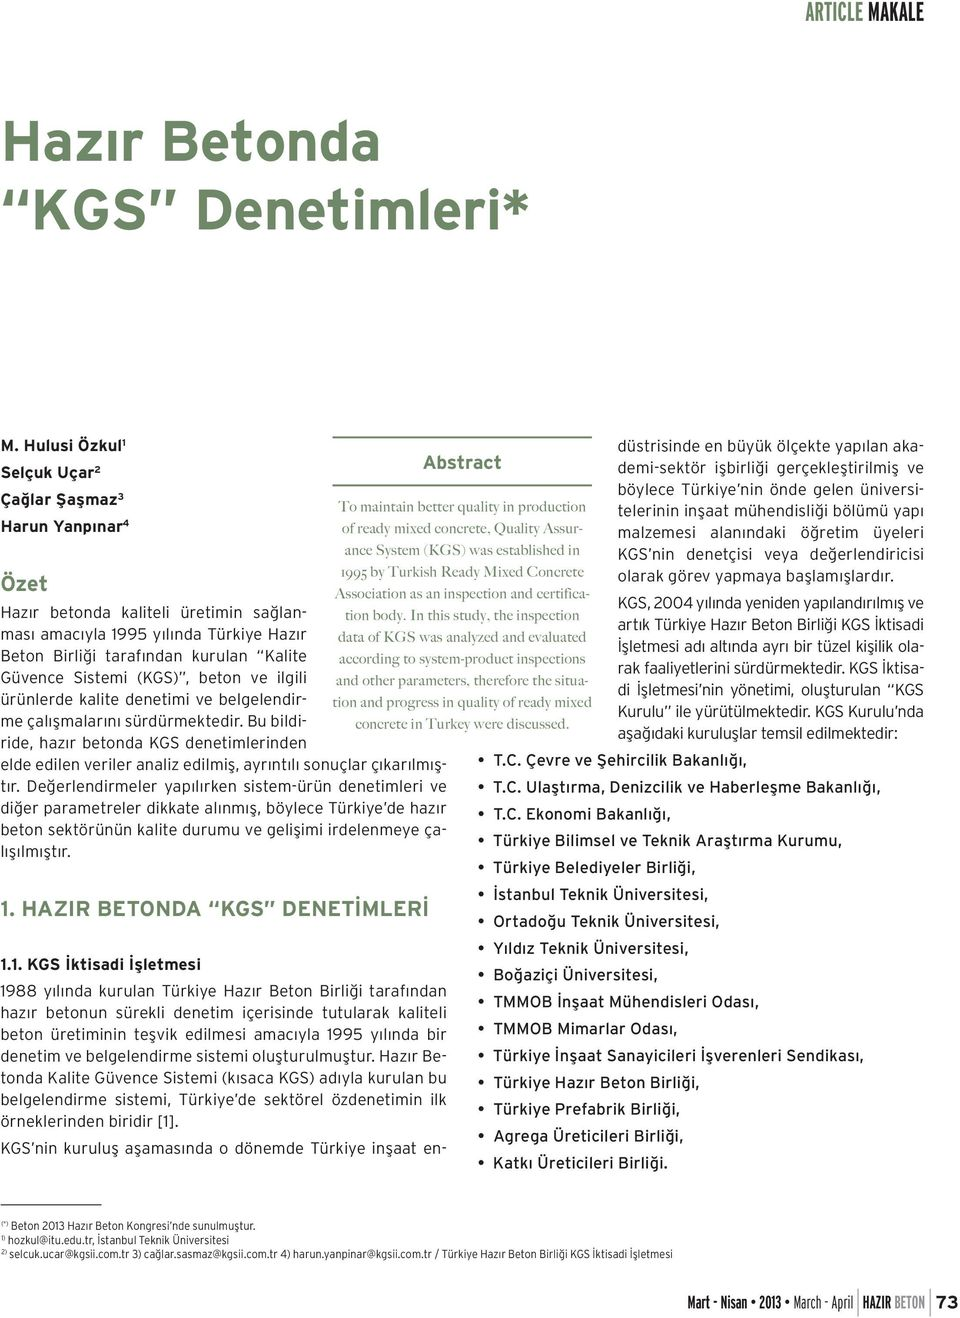 to system-product inspections Güvence Sistemi (KGS), beton ve ilgili and other parameters, therefore the situation and progress in quality of ready mixed ürünlerde kalite denetimi ve belgelendirme